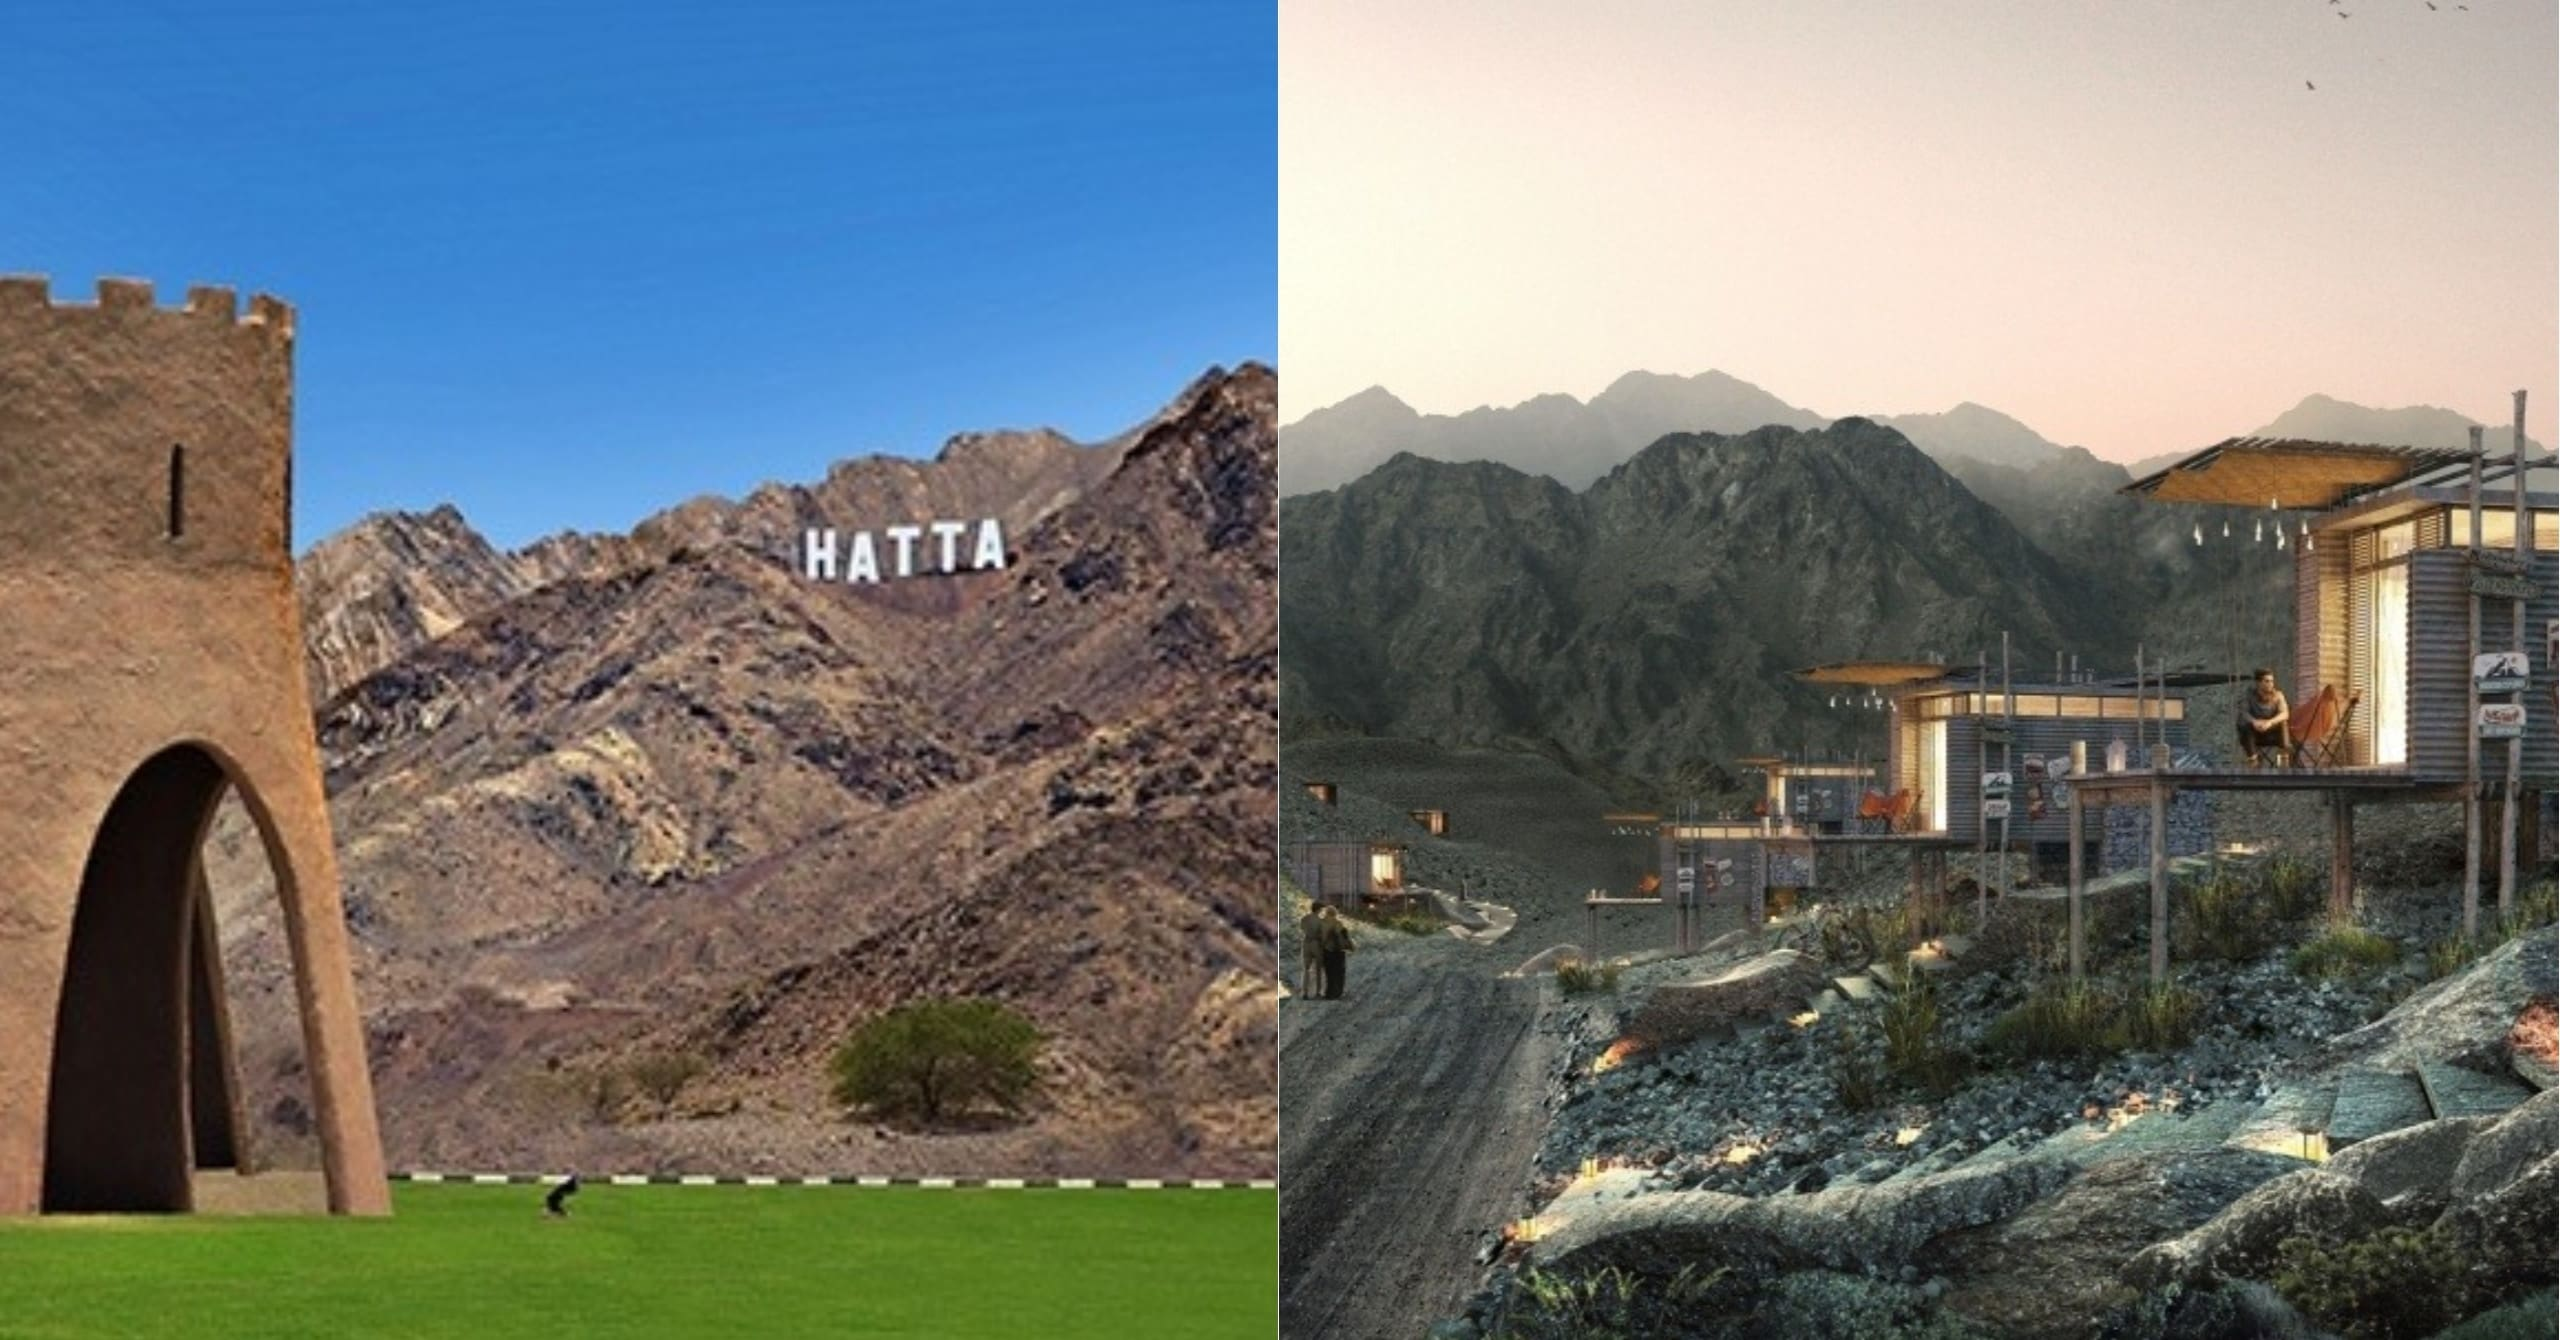 Hatta Dubai Is Getting A Hollywood Style Sign And Mountain